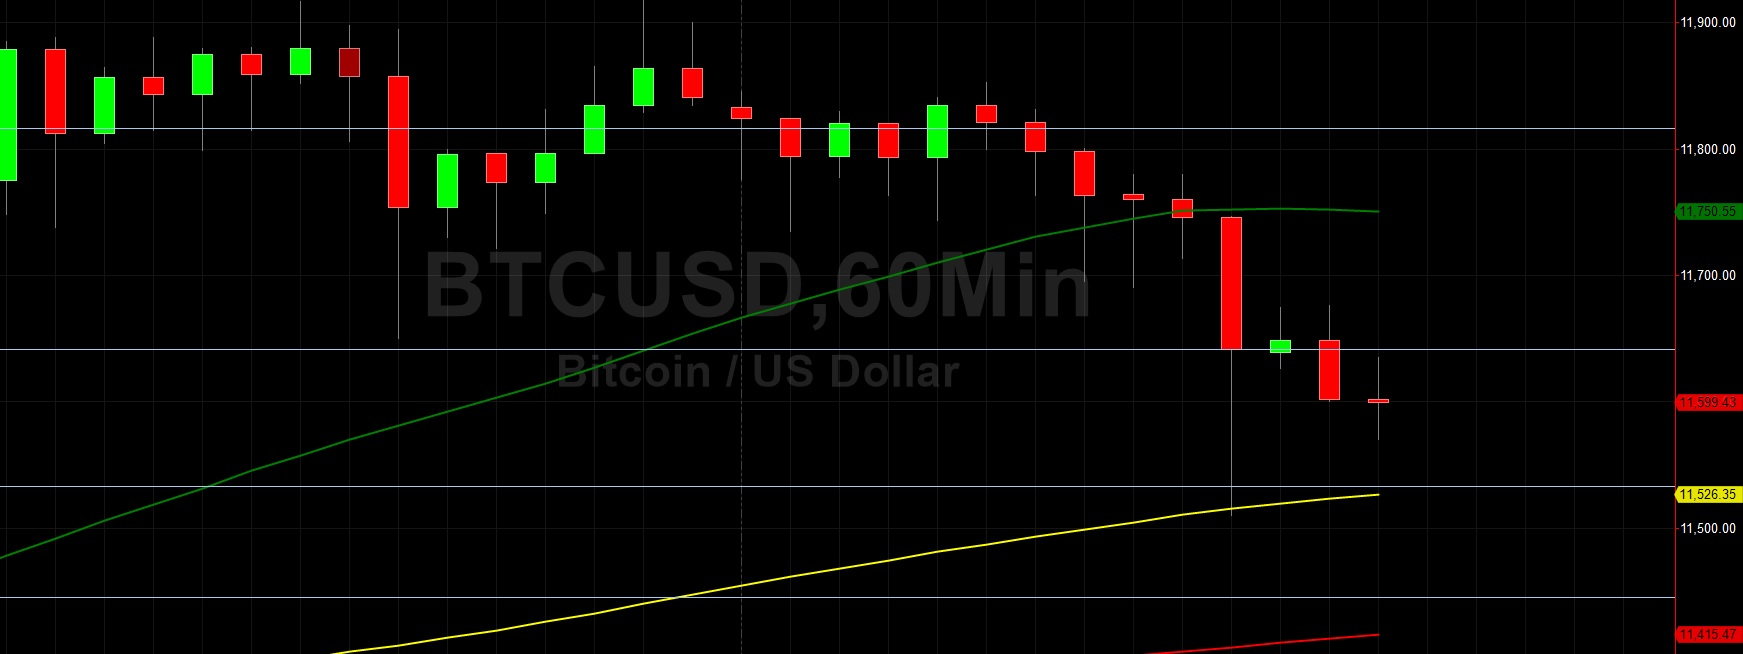 BTC/USD Looking Weaker Early in the Weekend: Sally Ho's Technical Analysis 8 August 2020 BTC